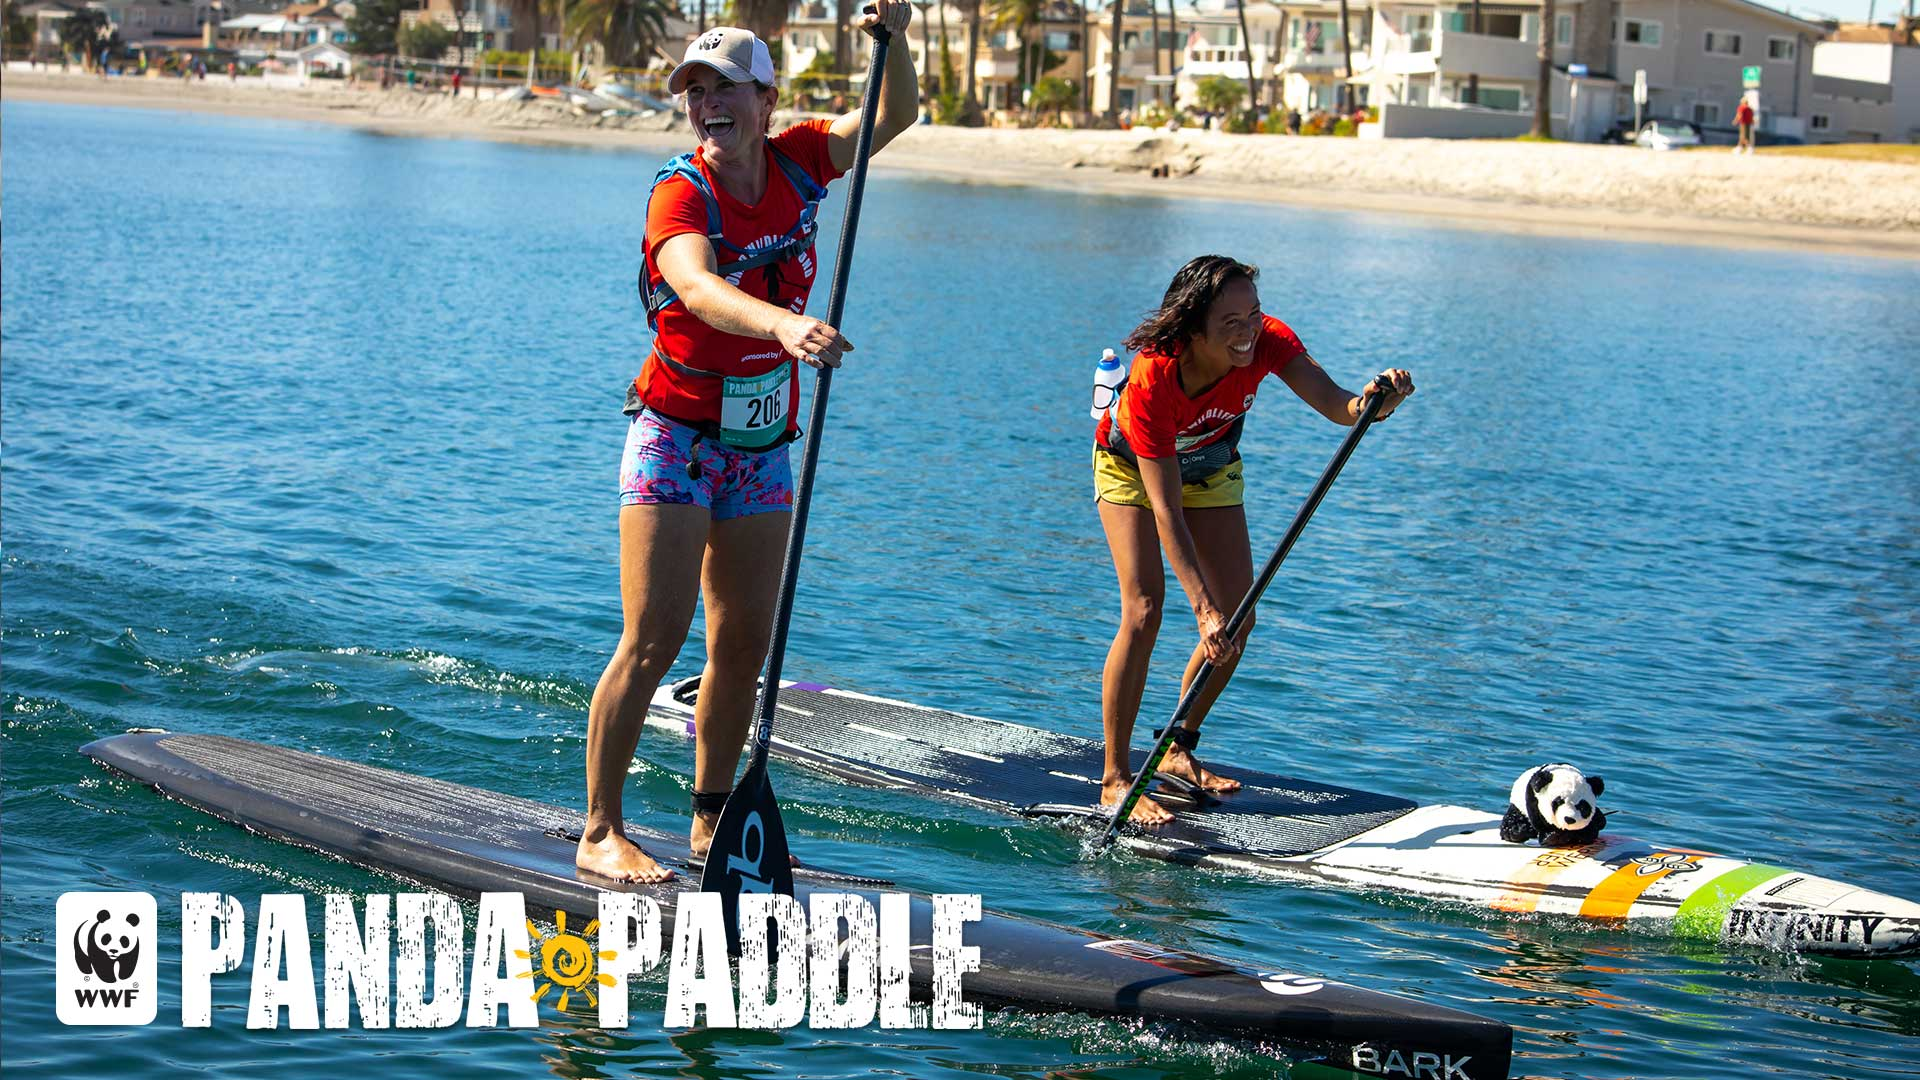 Panda Paddle: Take a Stand for Nature